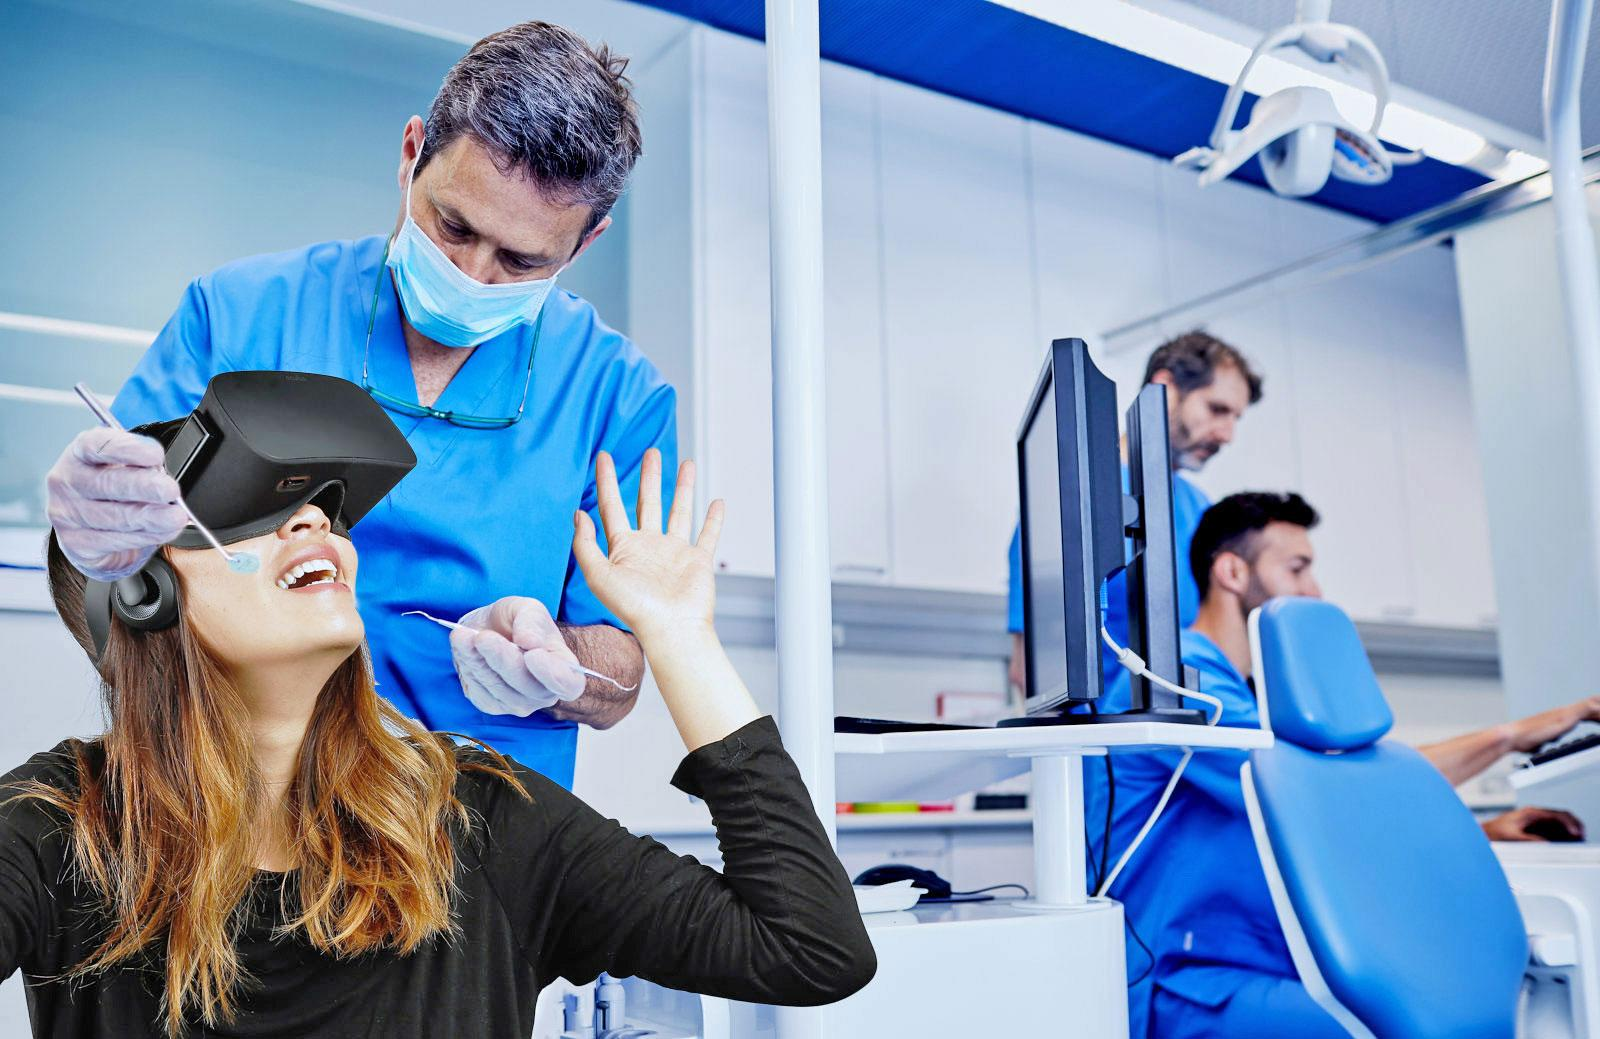 Researchers are using VR to make dentist visits less painful | Engadget